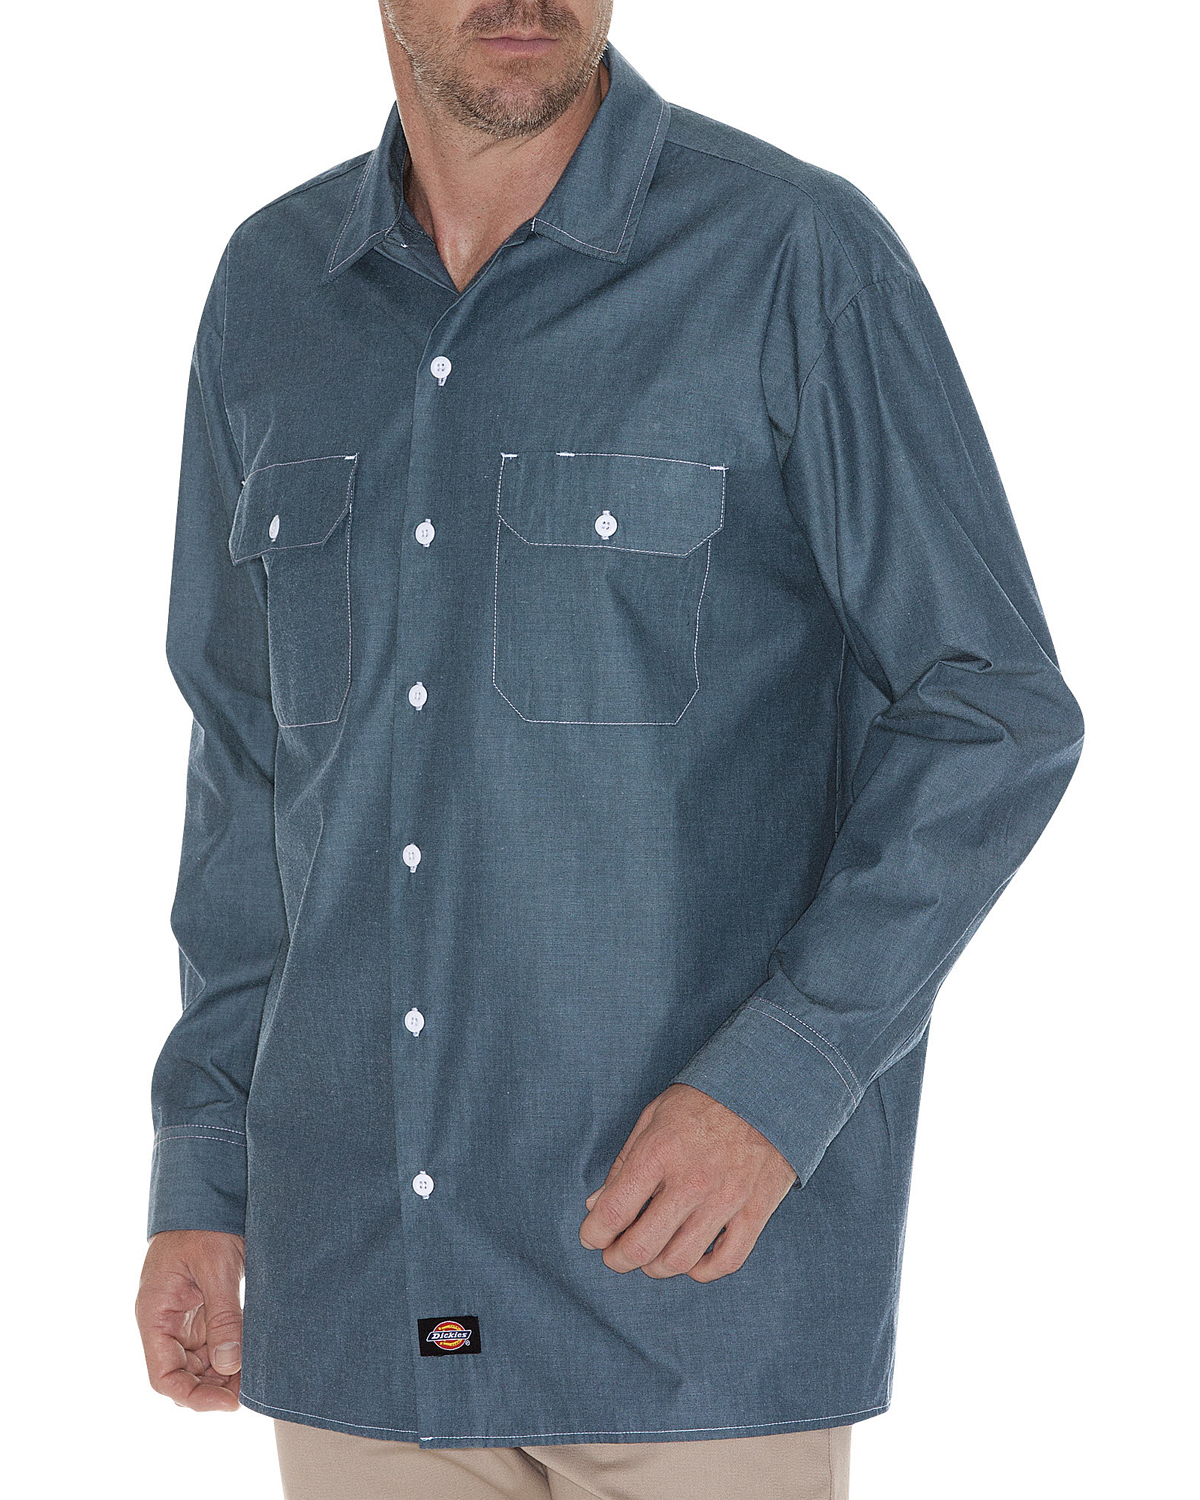 Men's Tall Relaxed Fit Long-Sleeve Chambray Shirt